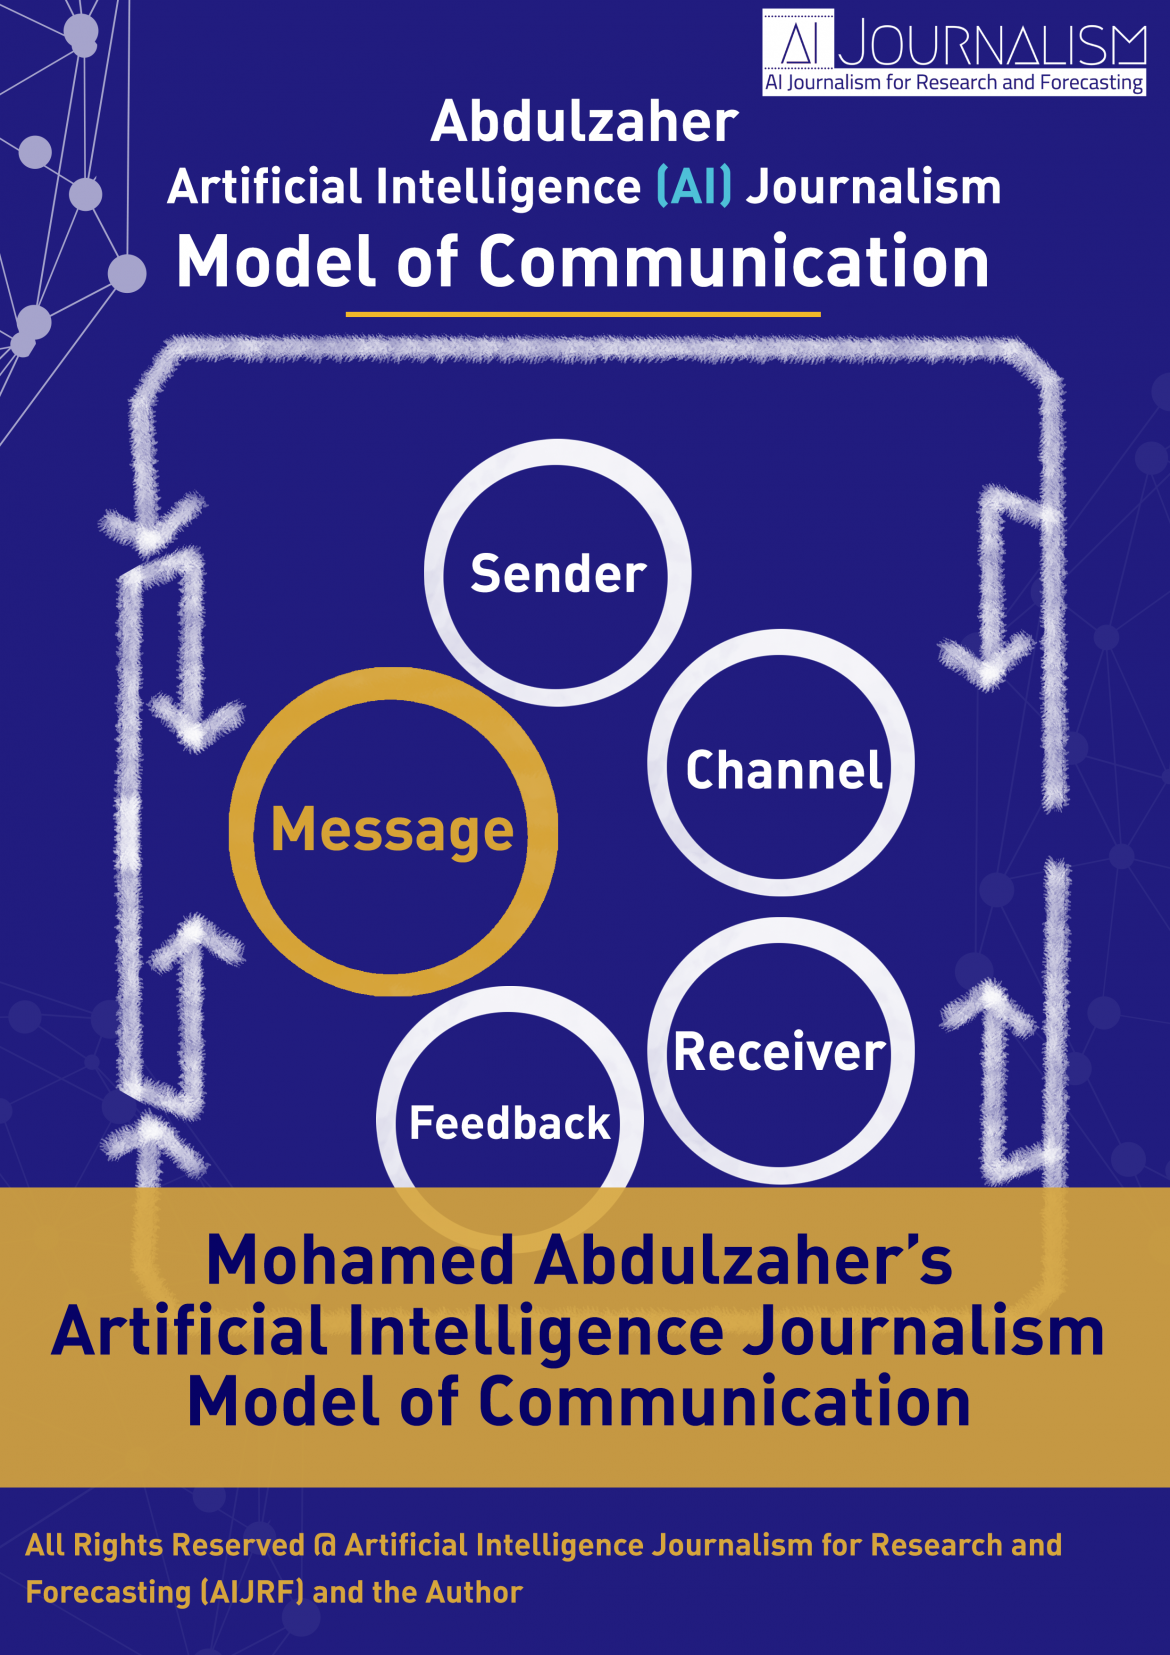 Mohamed-Abdulzaher-Artificial-intelligence-Journalism-Model-of-Communication